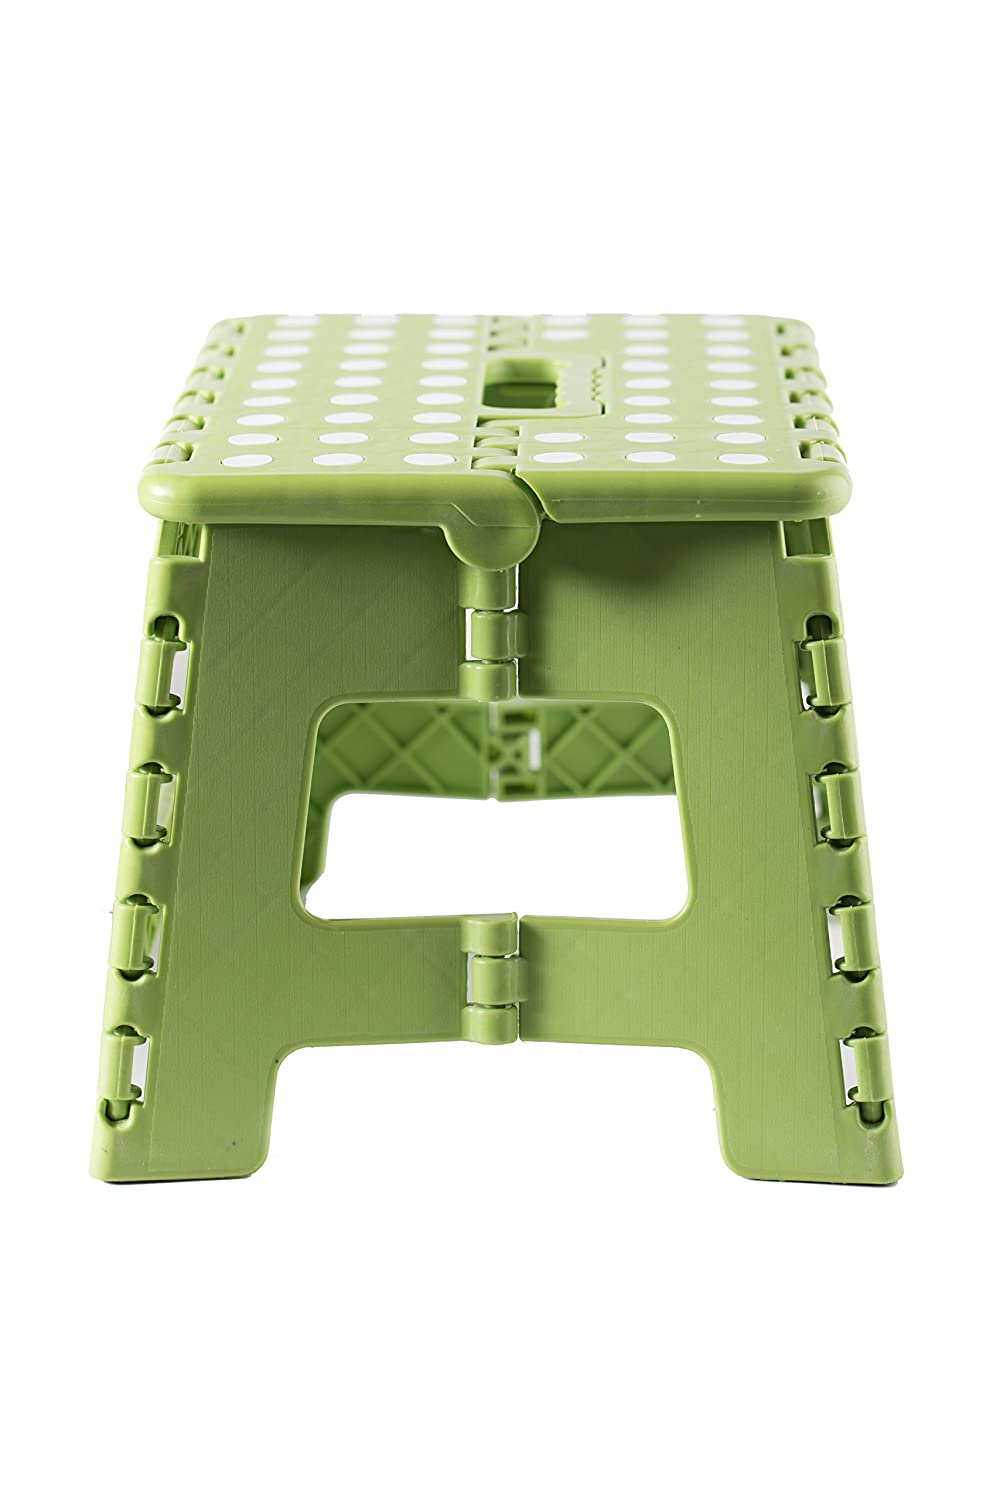 Green Viking Non-Slip Folding Step Stool for Kids and Adults